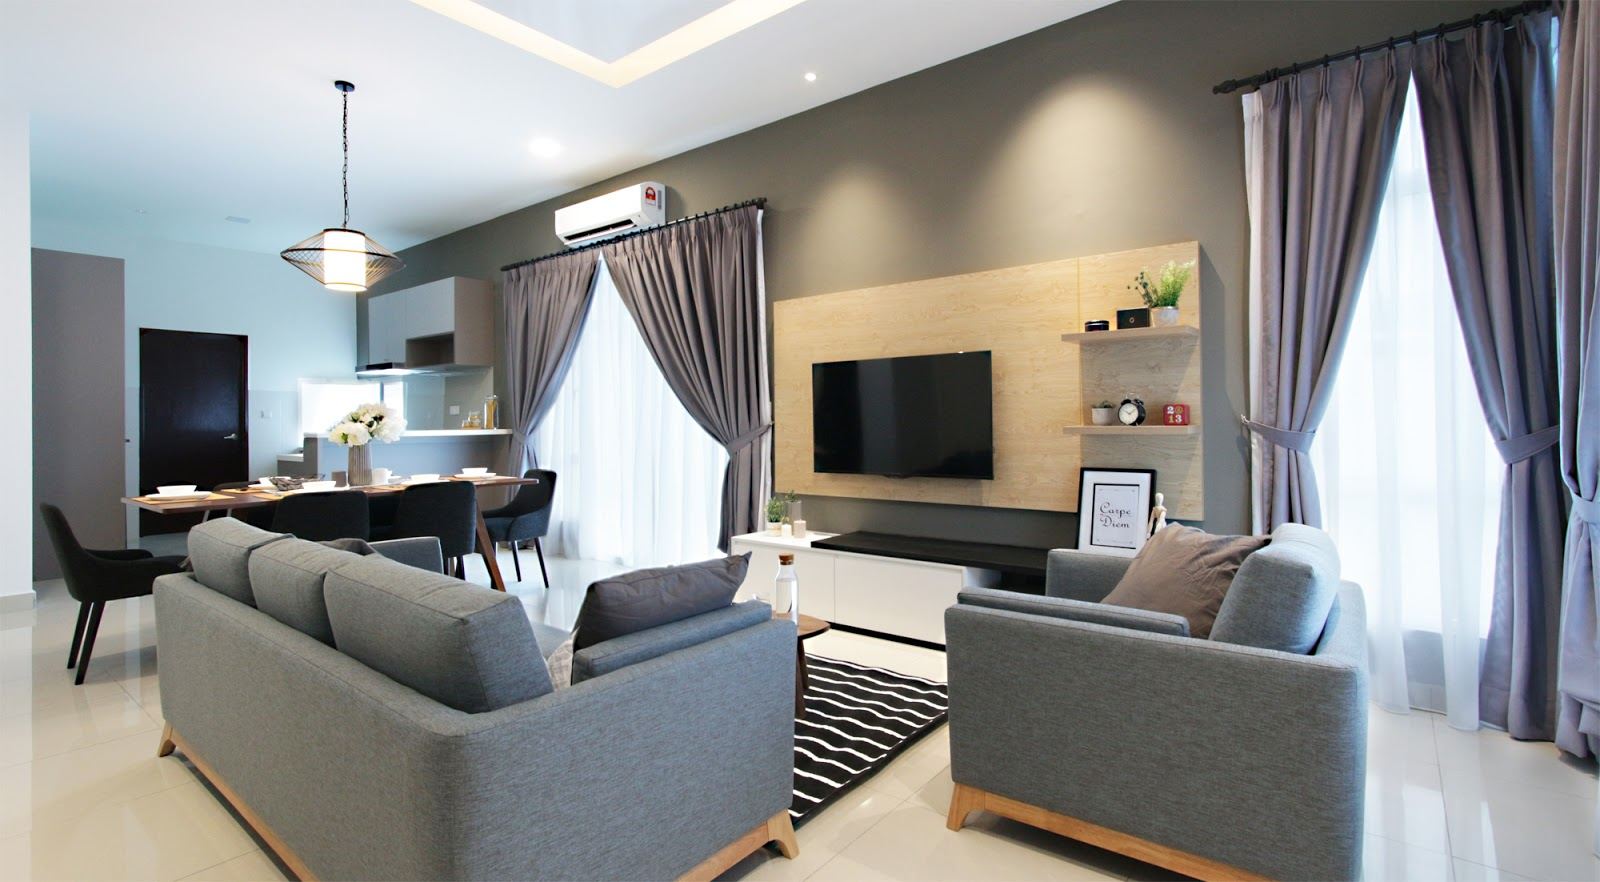 Take a Tour of This Fully-Furnished Semi-D House in M Residence 2